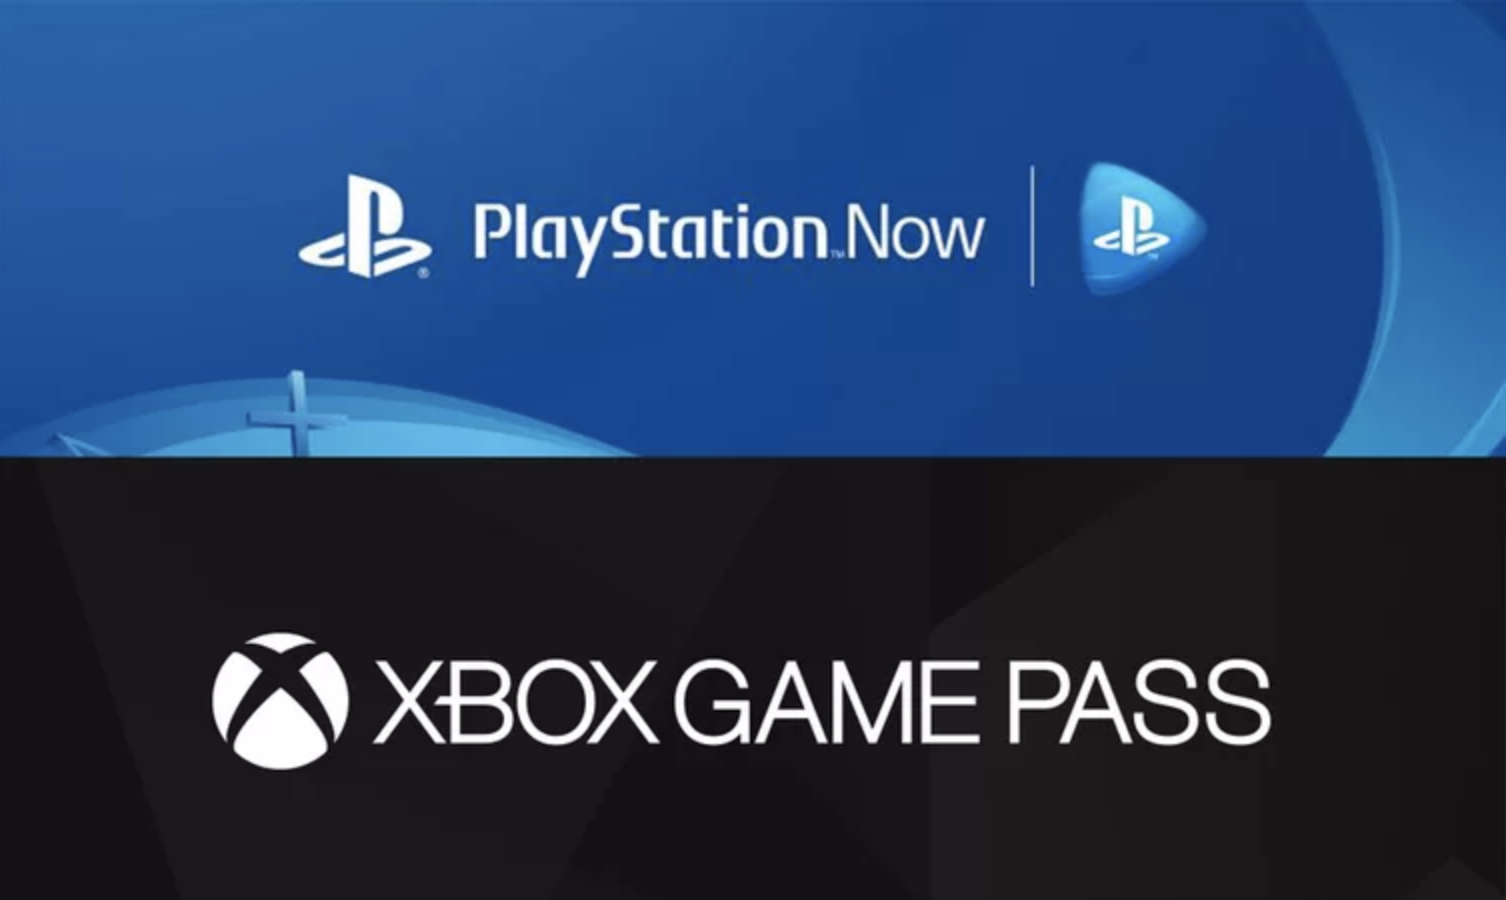 ps now xbox game pass